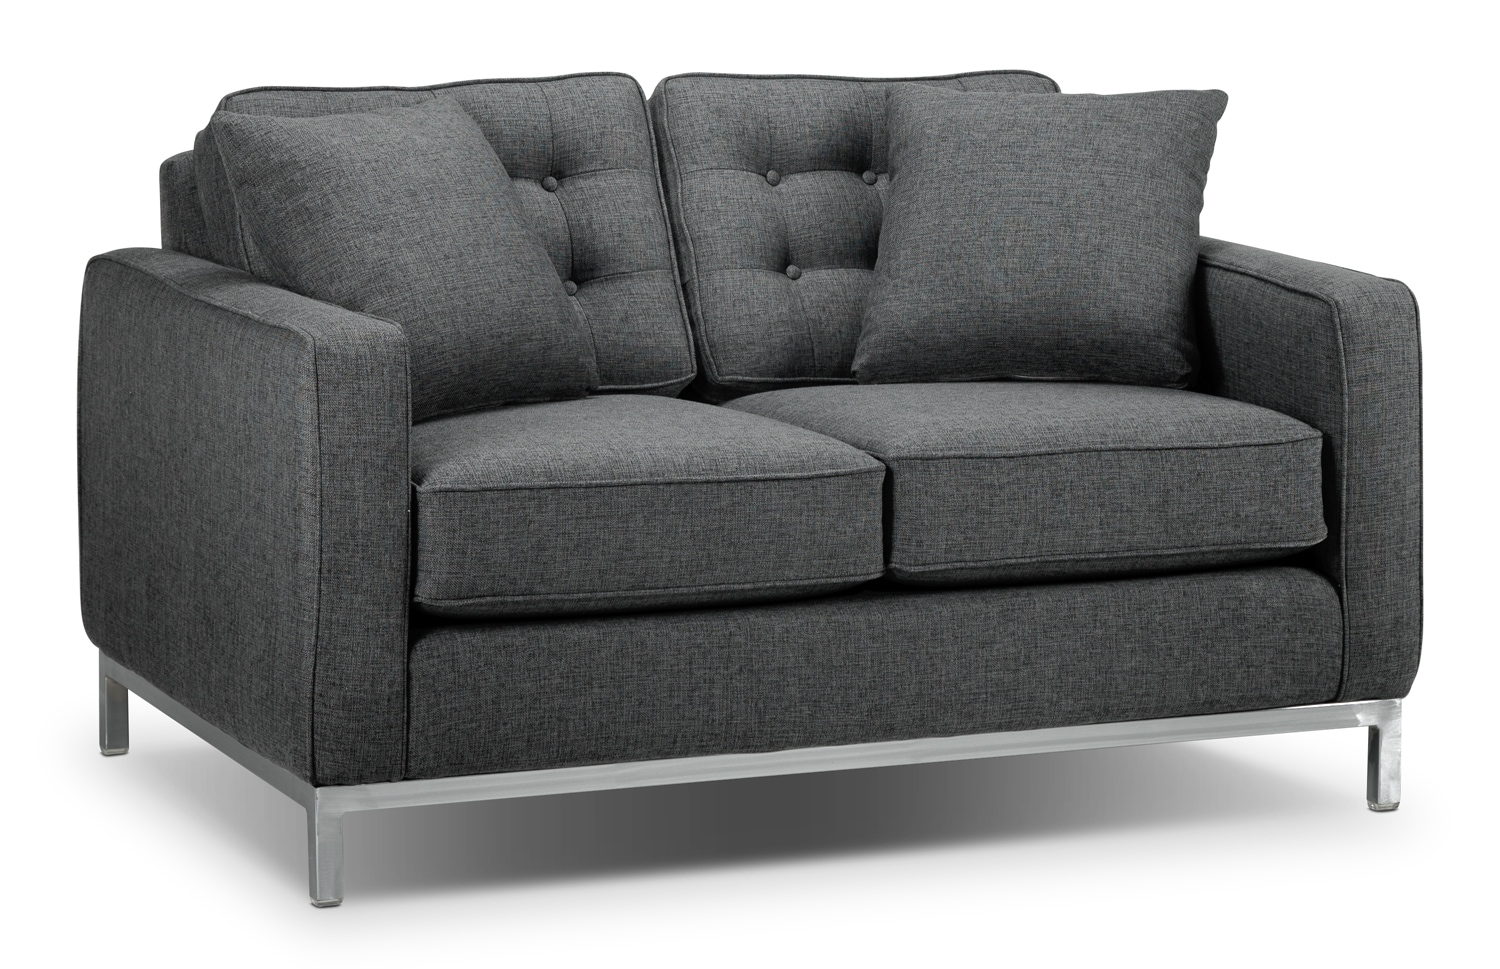 Living Room Furniture - Brunswick Loveseat - Charcoal